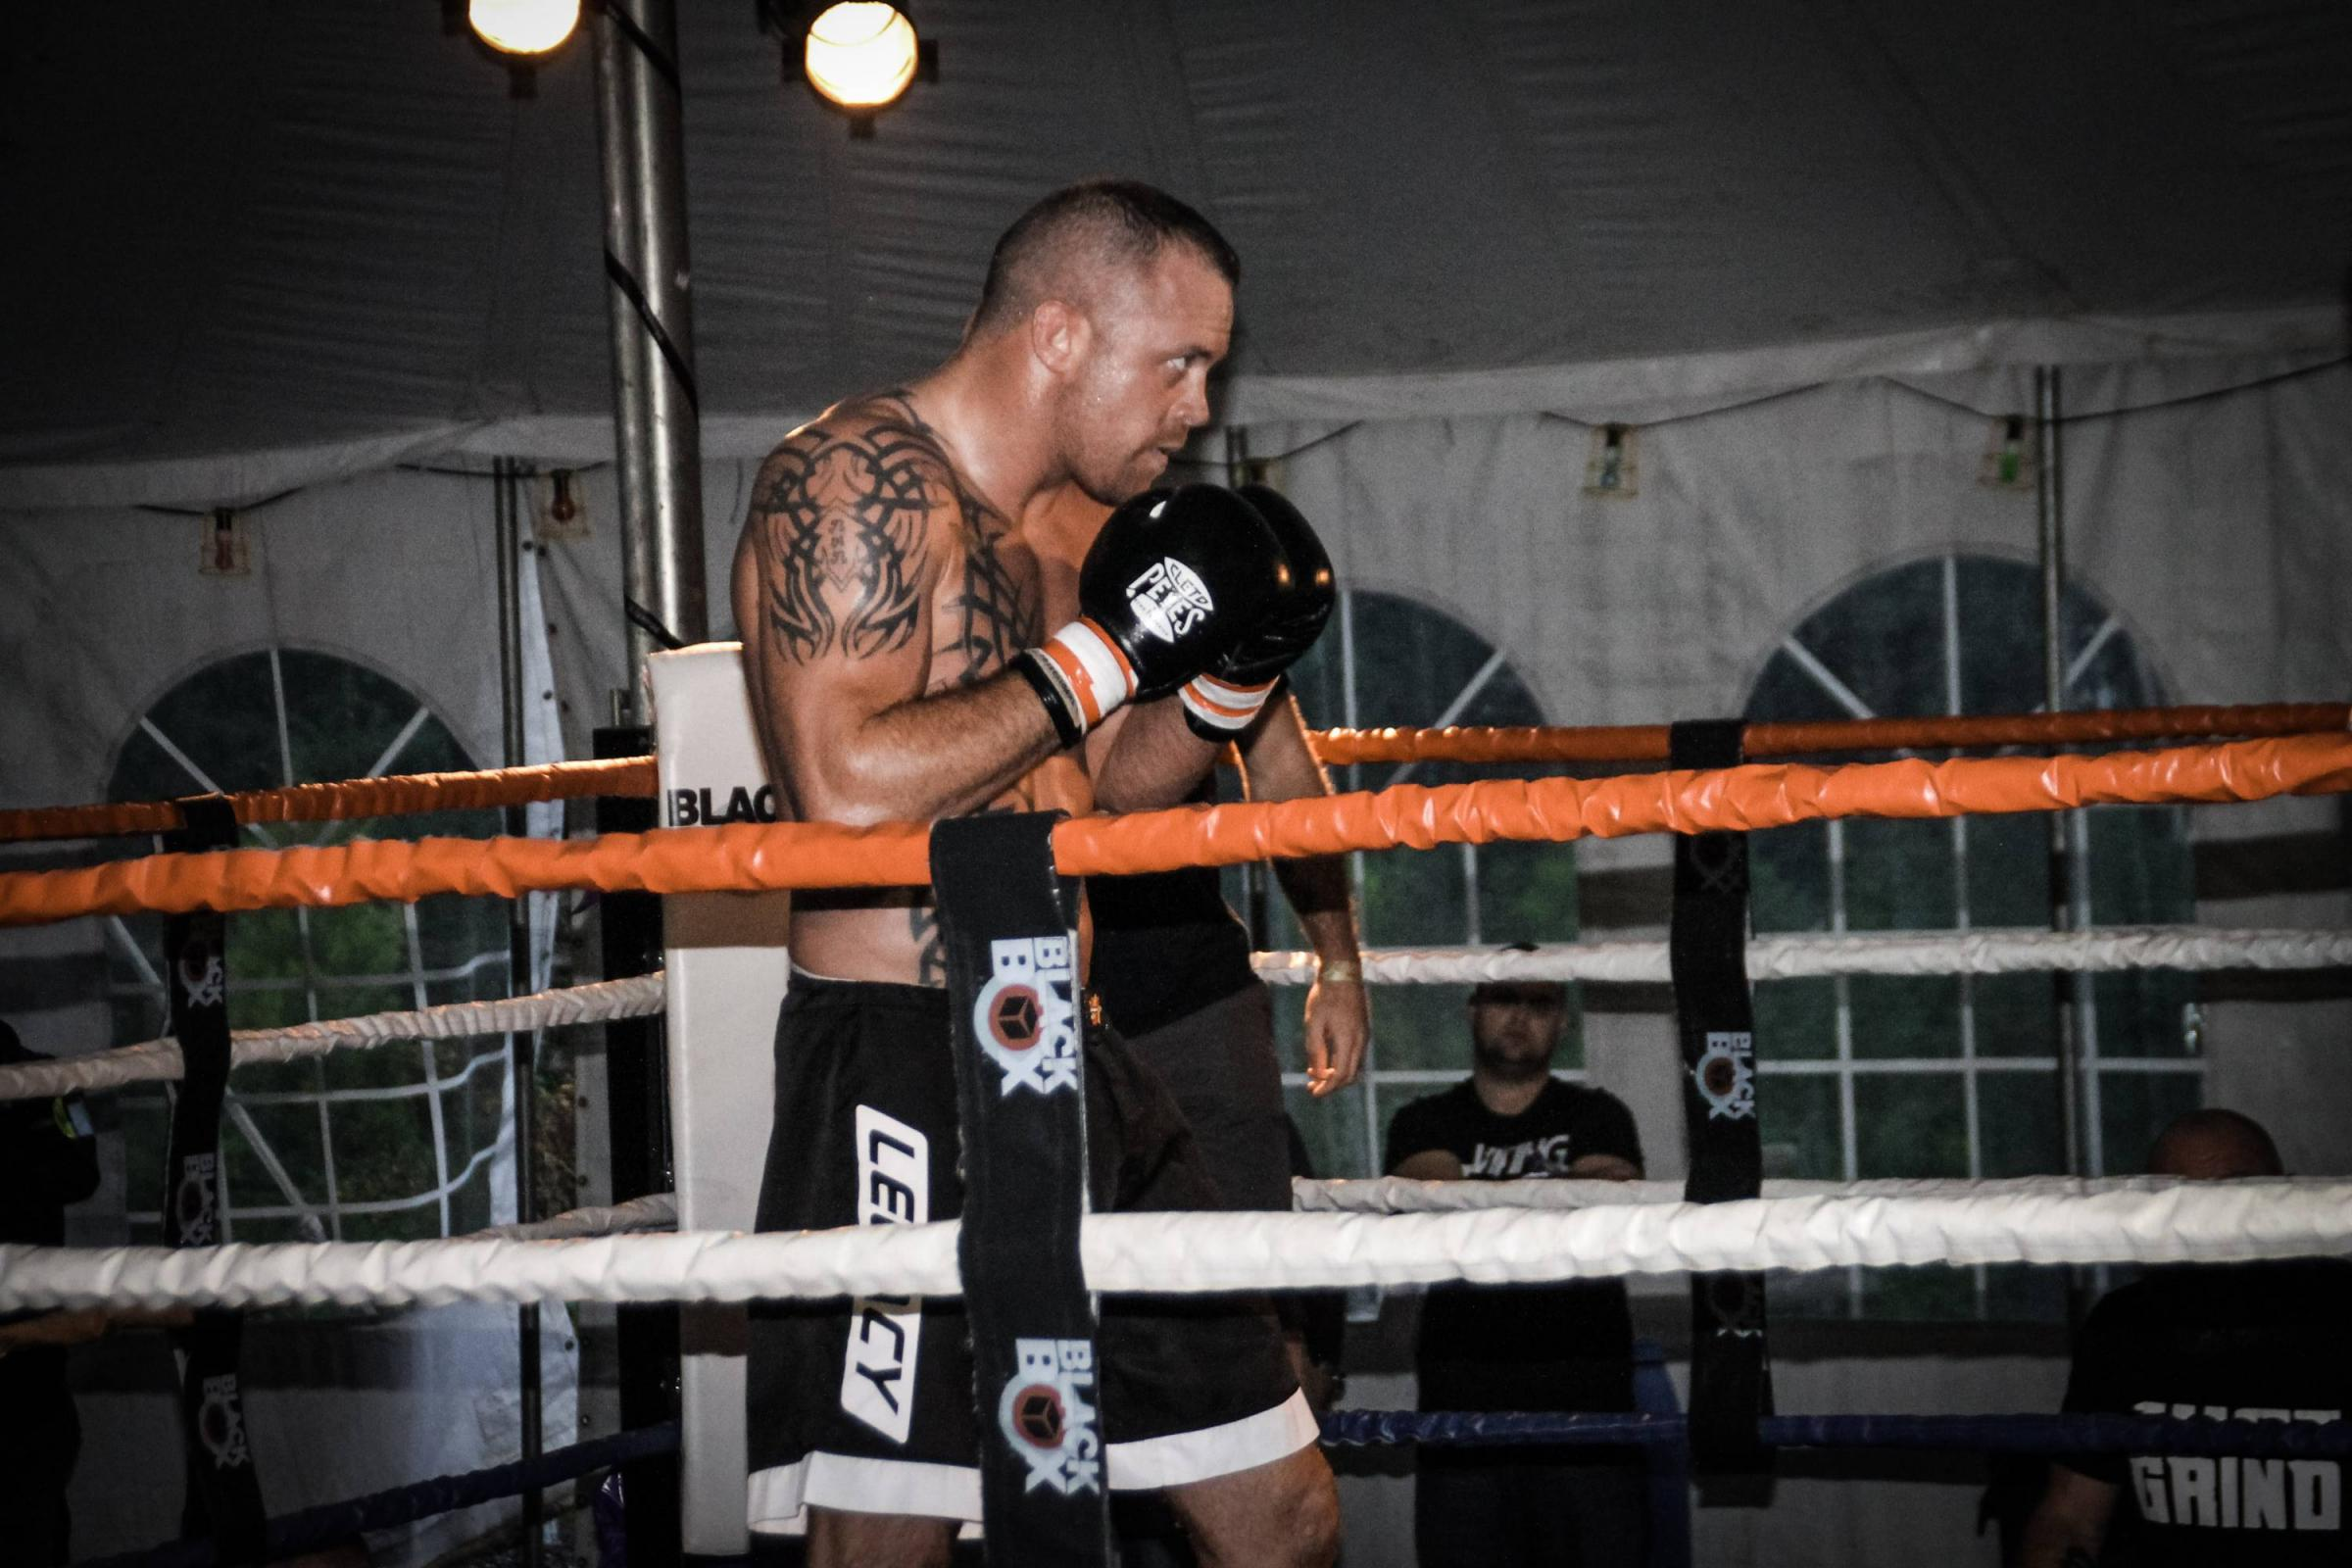 Kevin Thompson at Clash of the Titans 22.